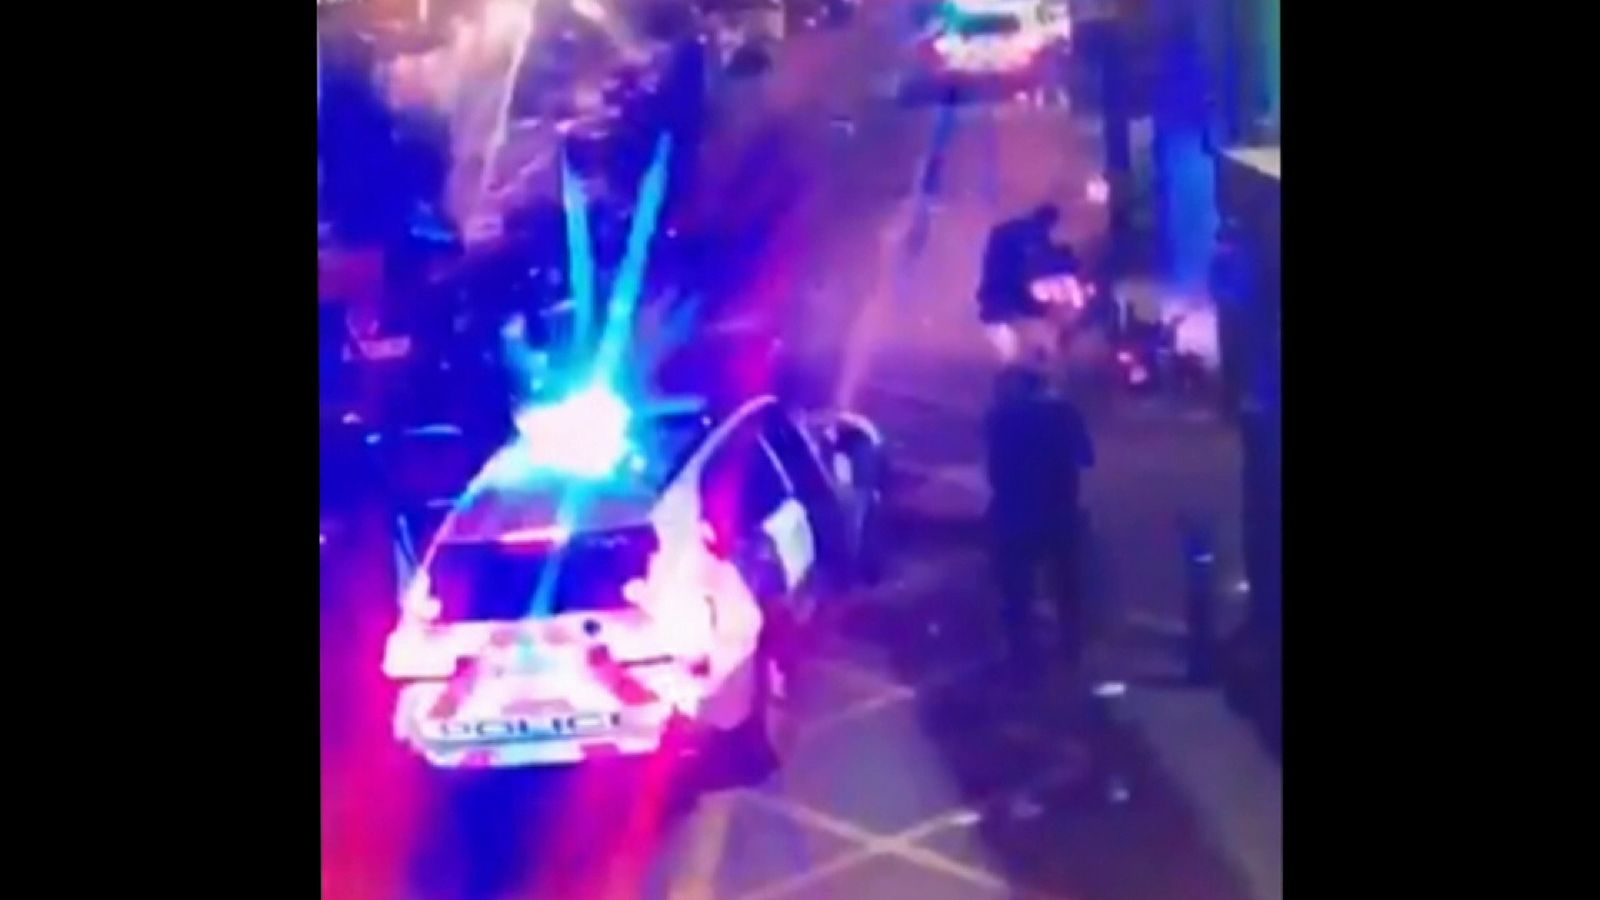 The moment police shot the terrorists at London Bridge